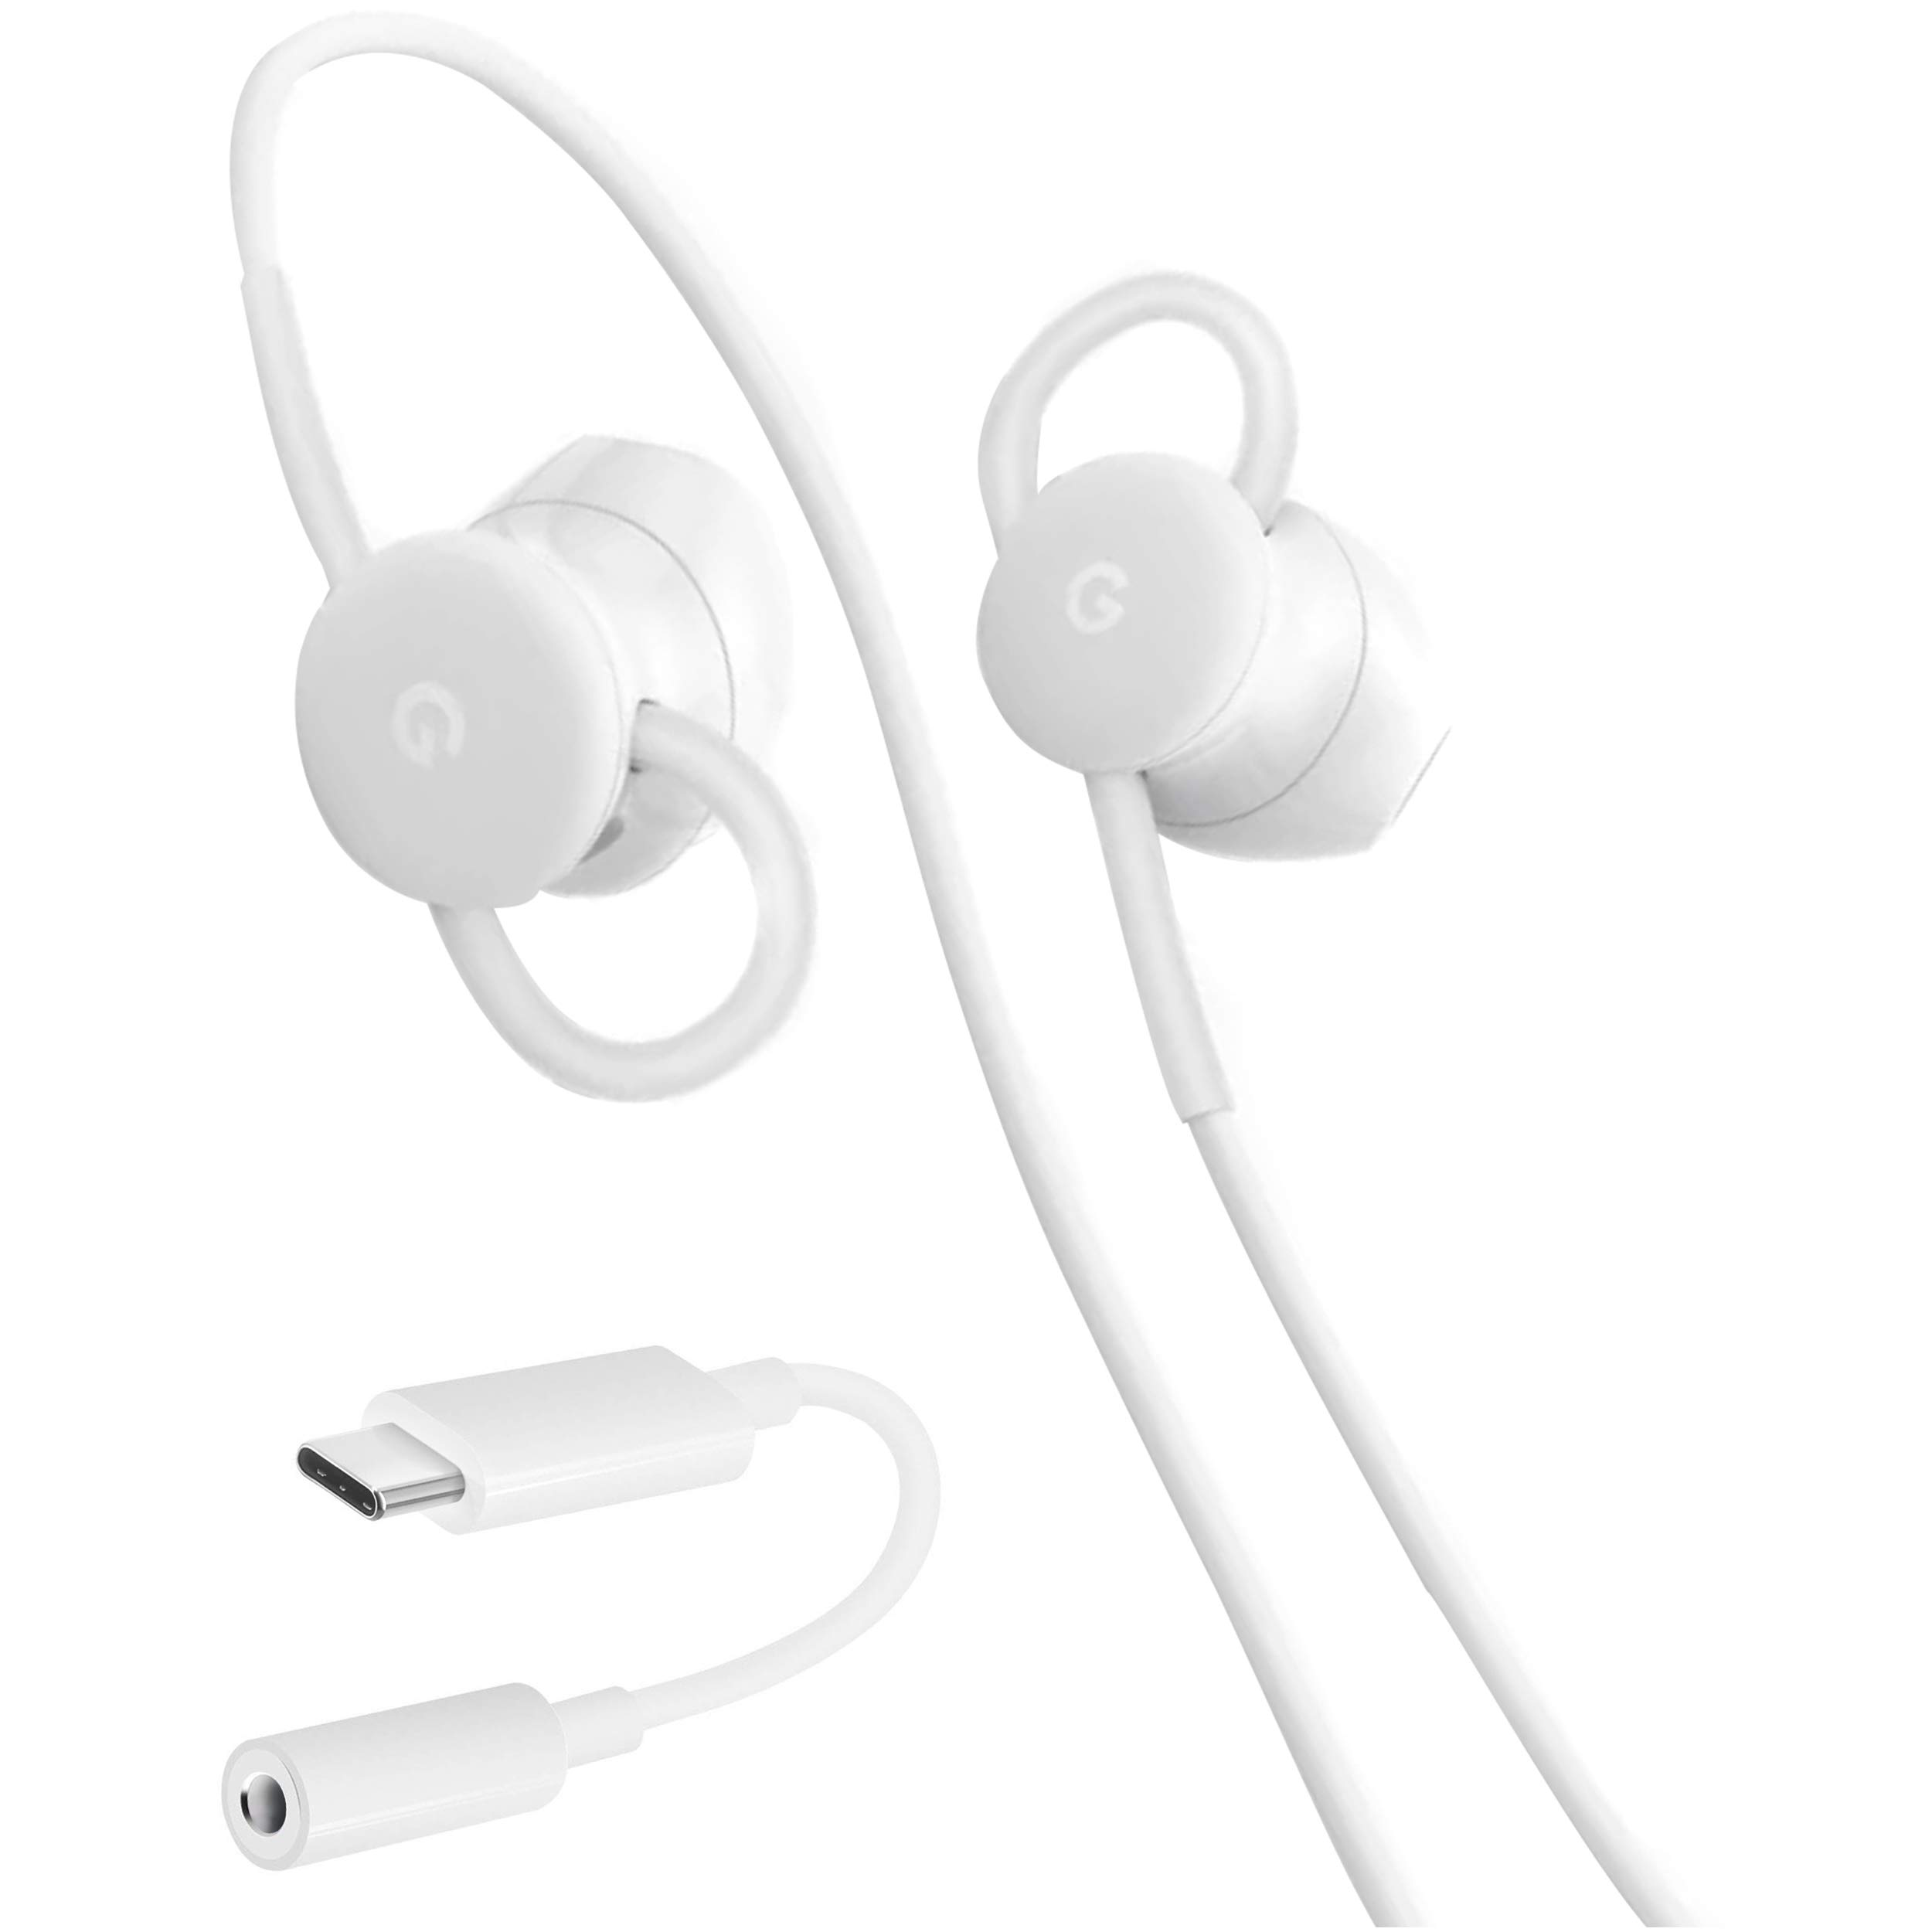 USB-C Earbuds, USB-C to 3.5mm Adapter, USB-C to USB 3.0 Adapter, for Google Pixel Devices - Accessory Combo Kit by Phihong Technology co. (Image #3)